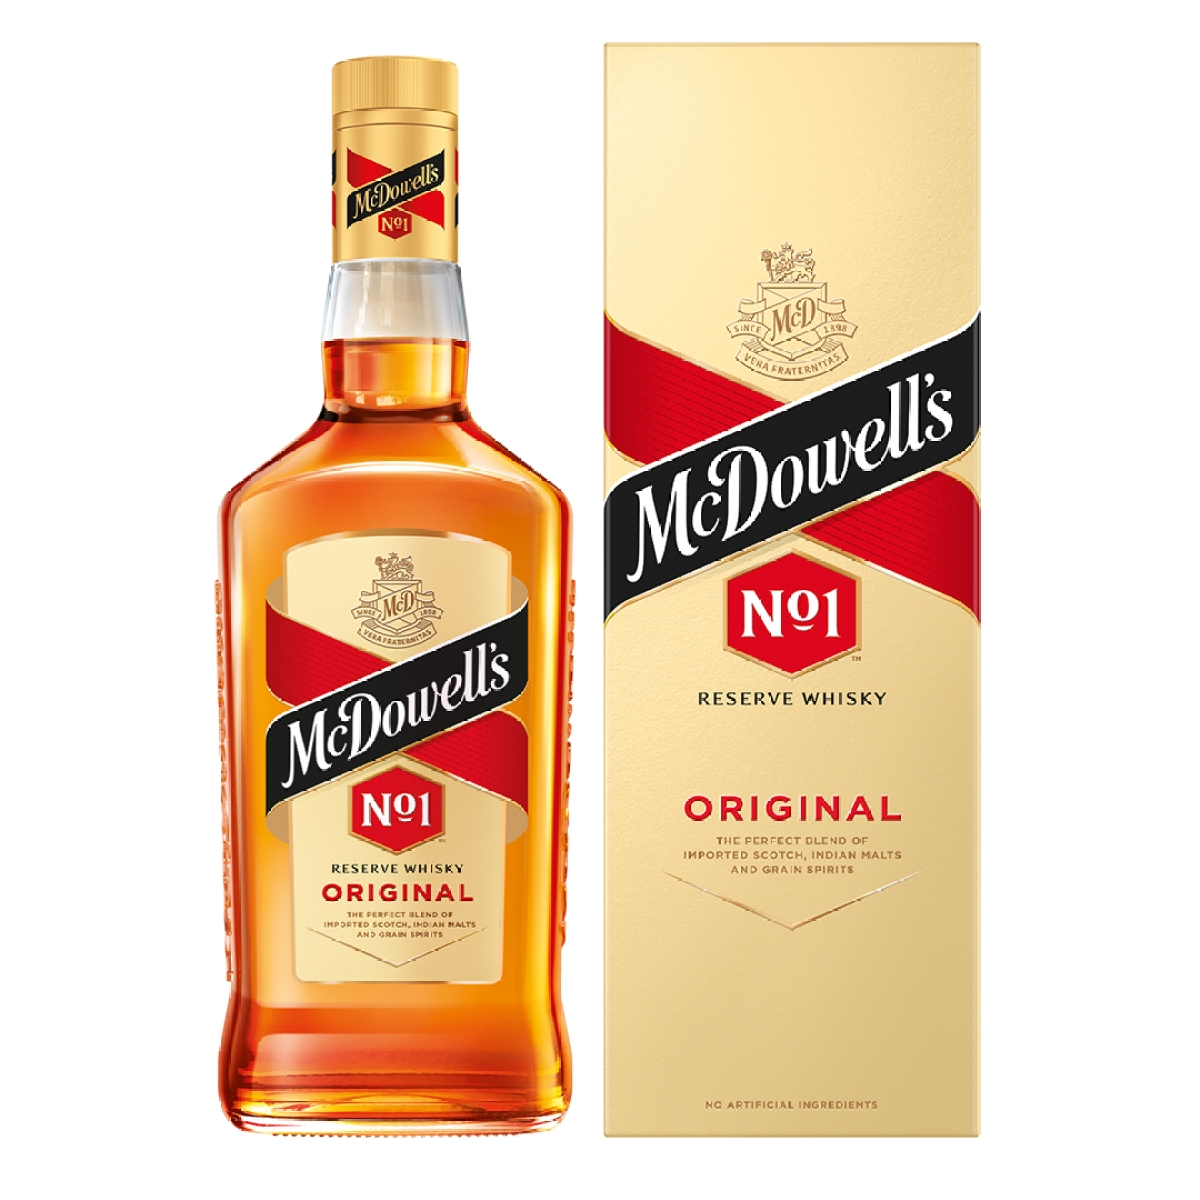 """This change is probably the biggest one after the launch of the McDowell's No. 1 brand in 1968"": Amarpreet Singh Anand, Diageo India"